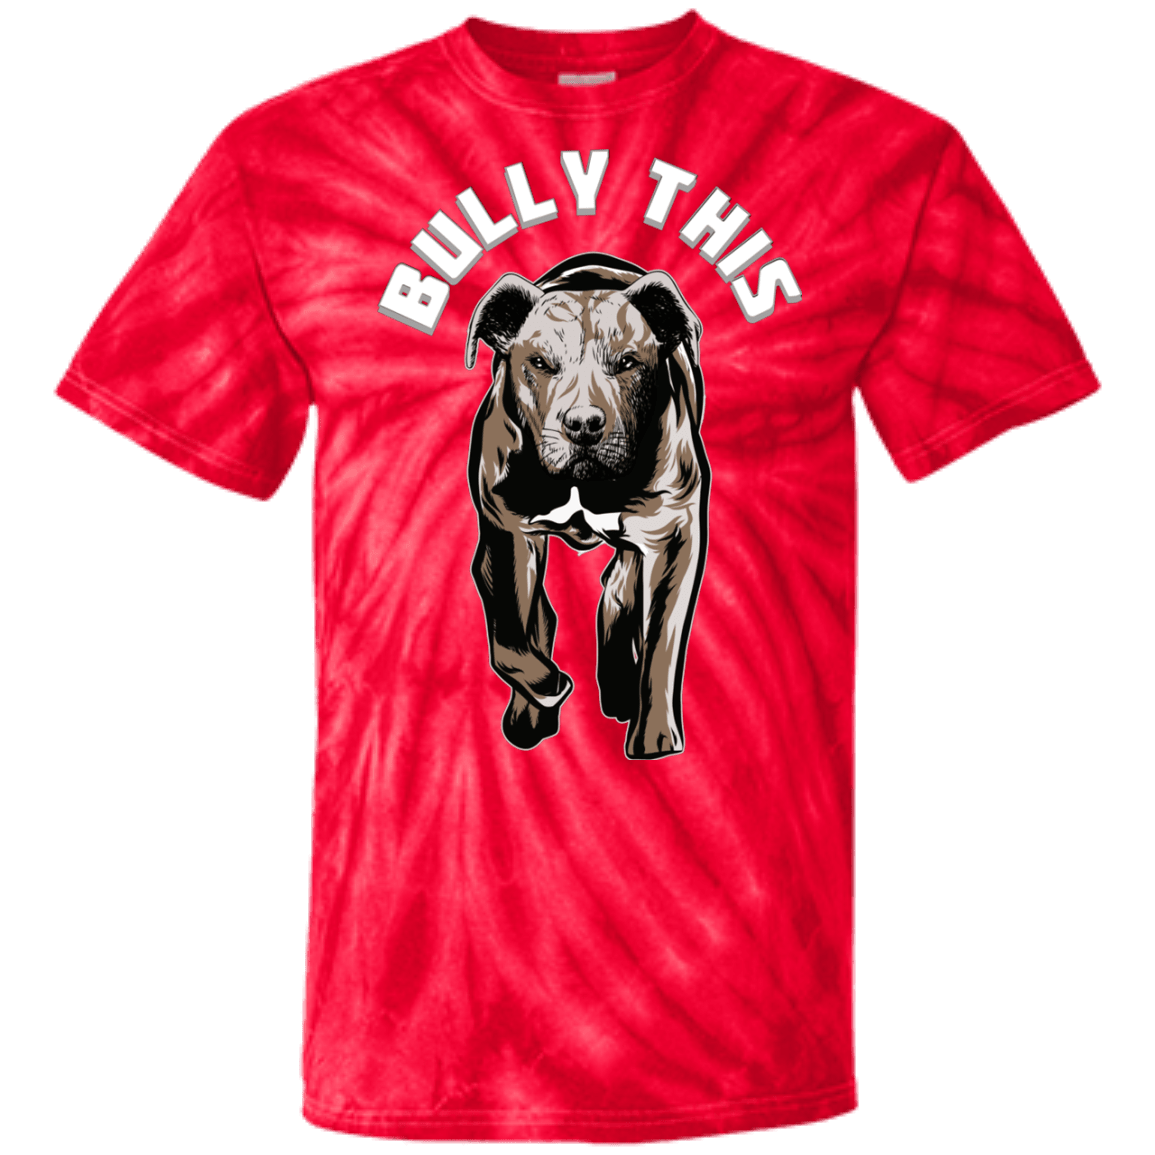 Bully This! - CD100 100% Cotton Tie Dye T-Shirt Spider Red Small - Little Pit Shop